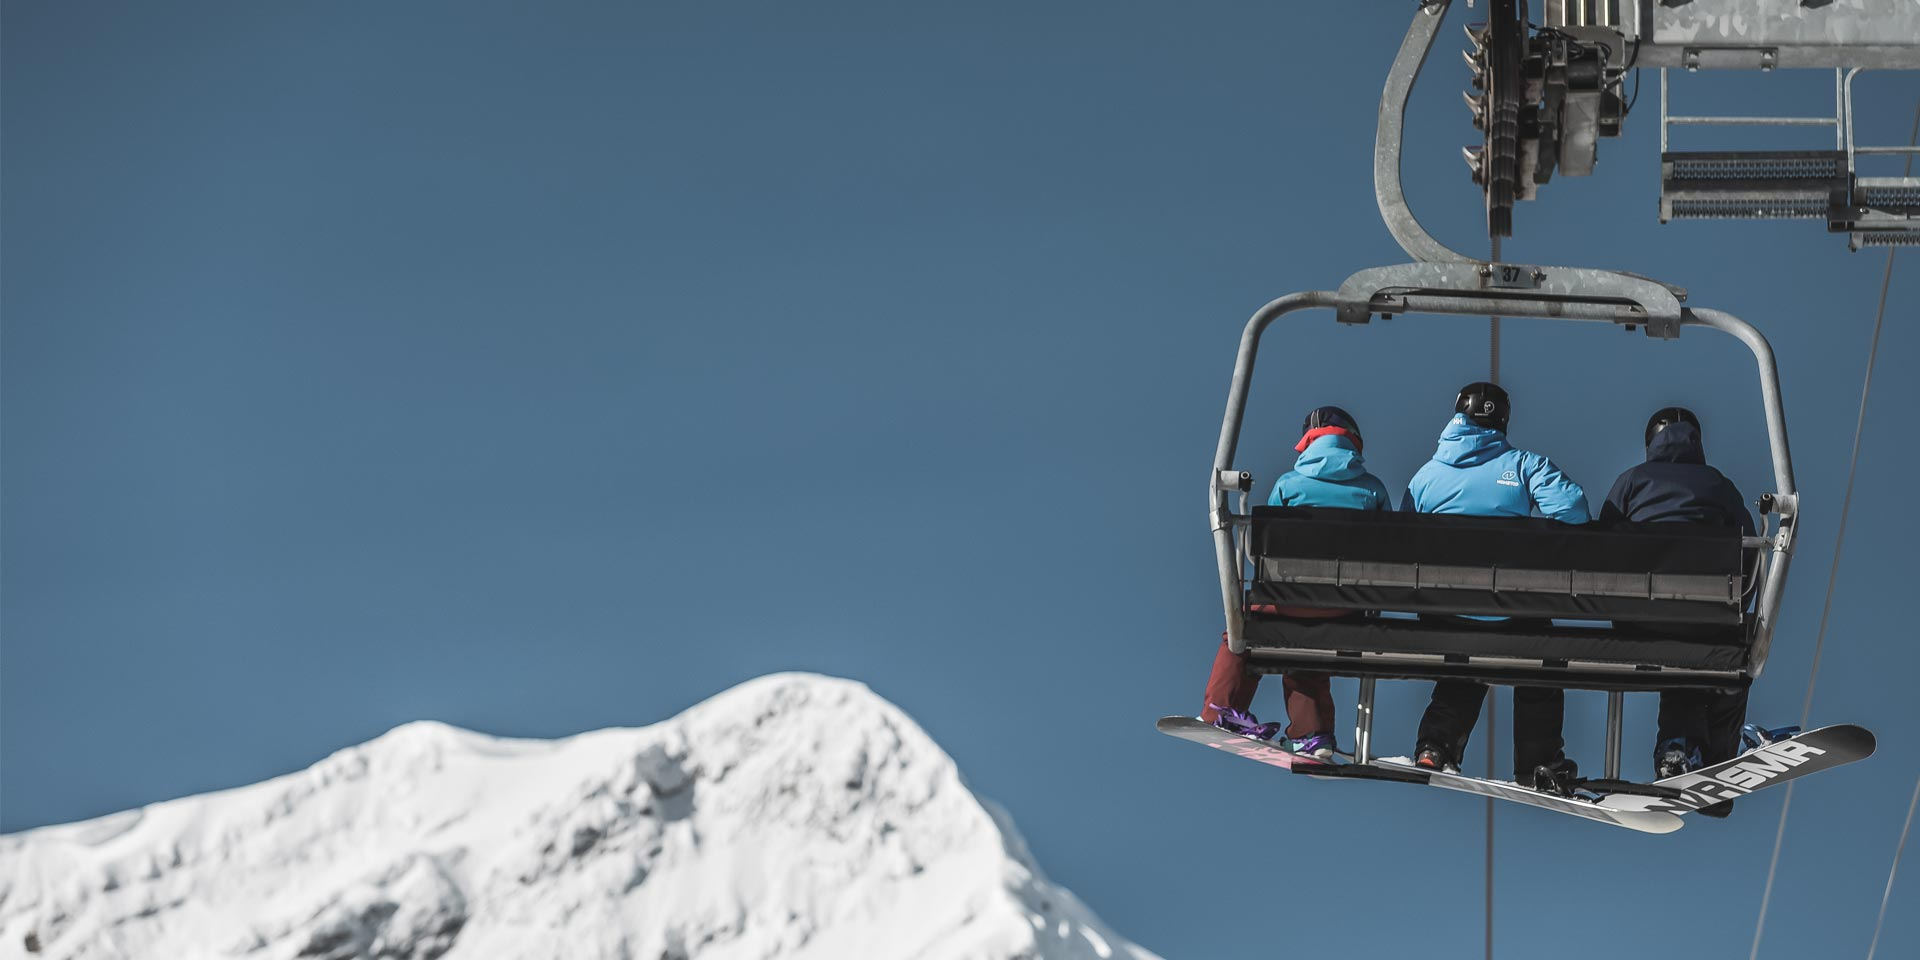 snowboarders-on-chairlift.jpg